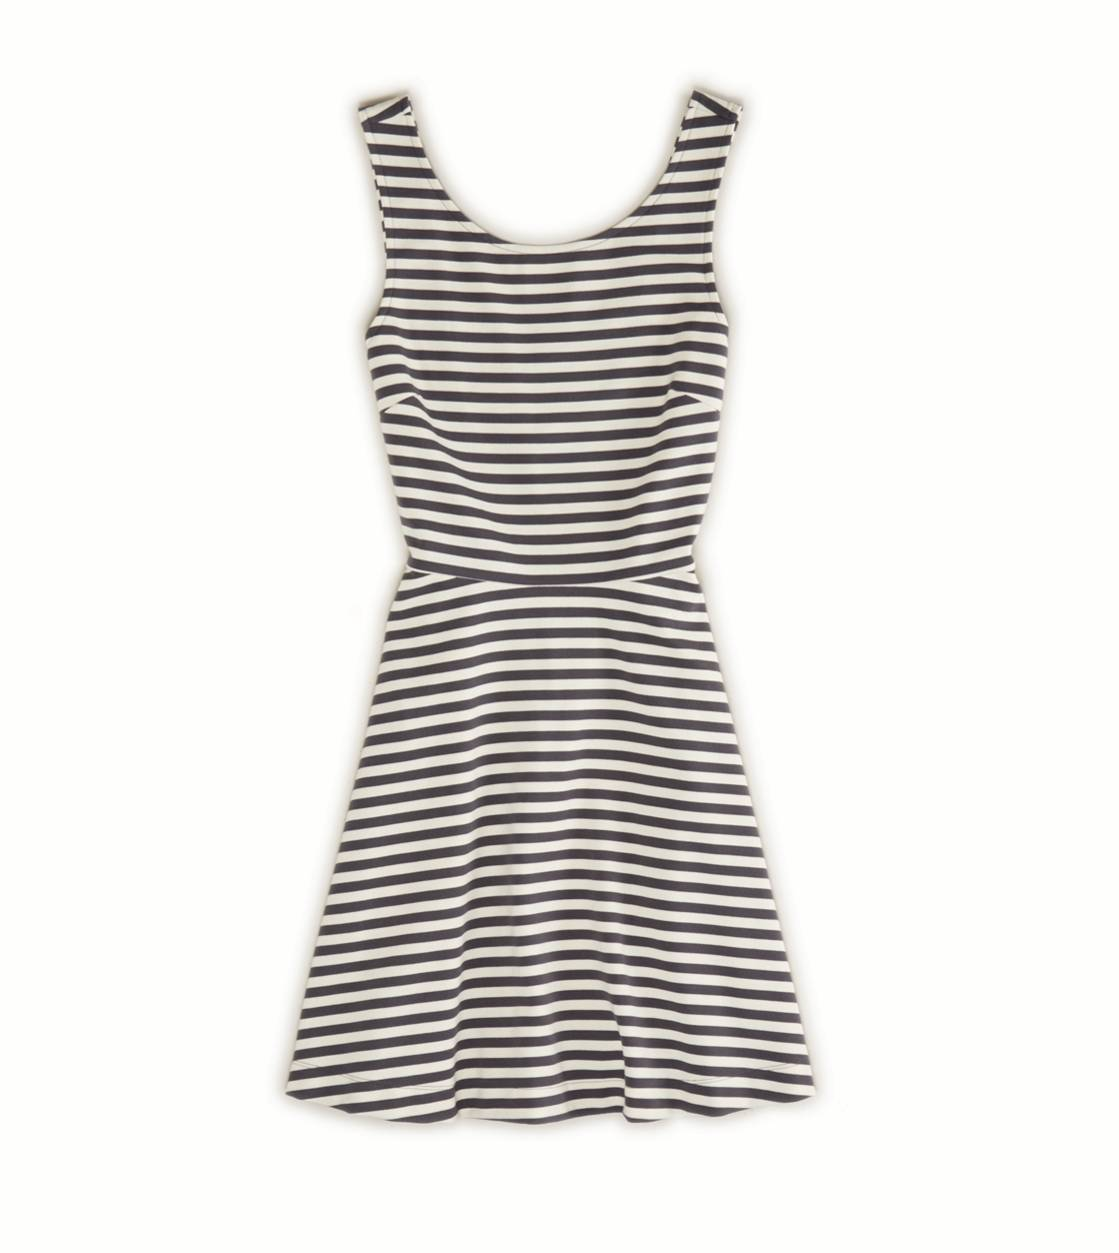 Ae striped fit & flare dress